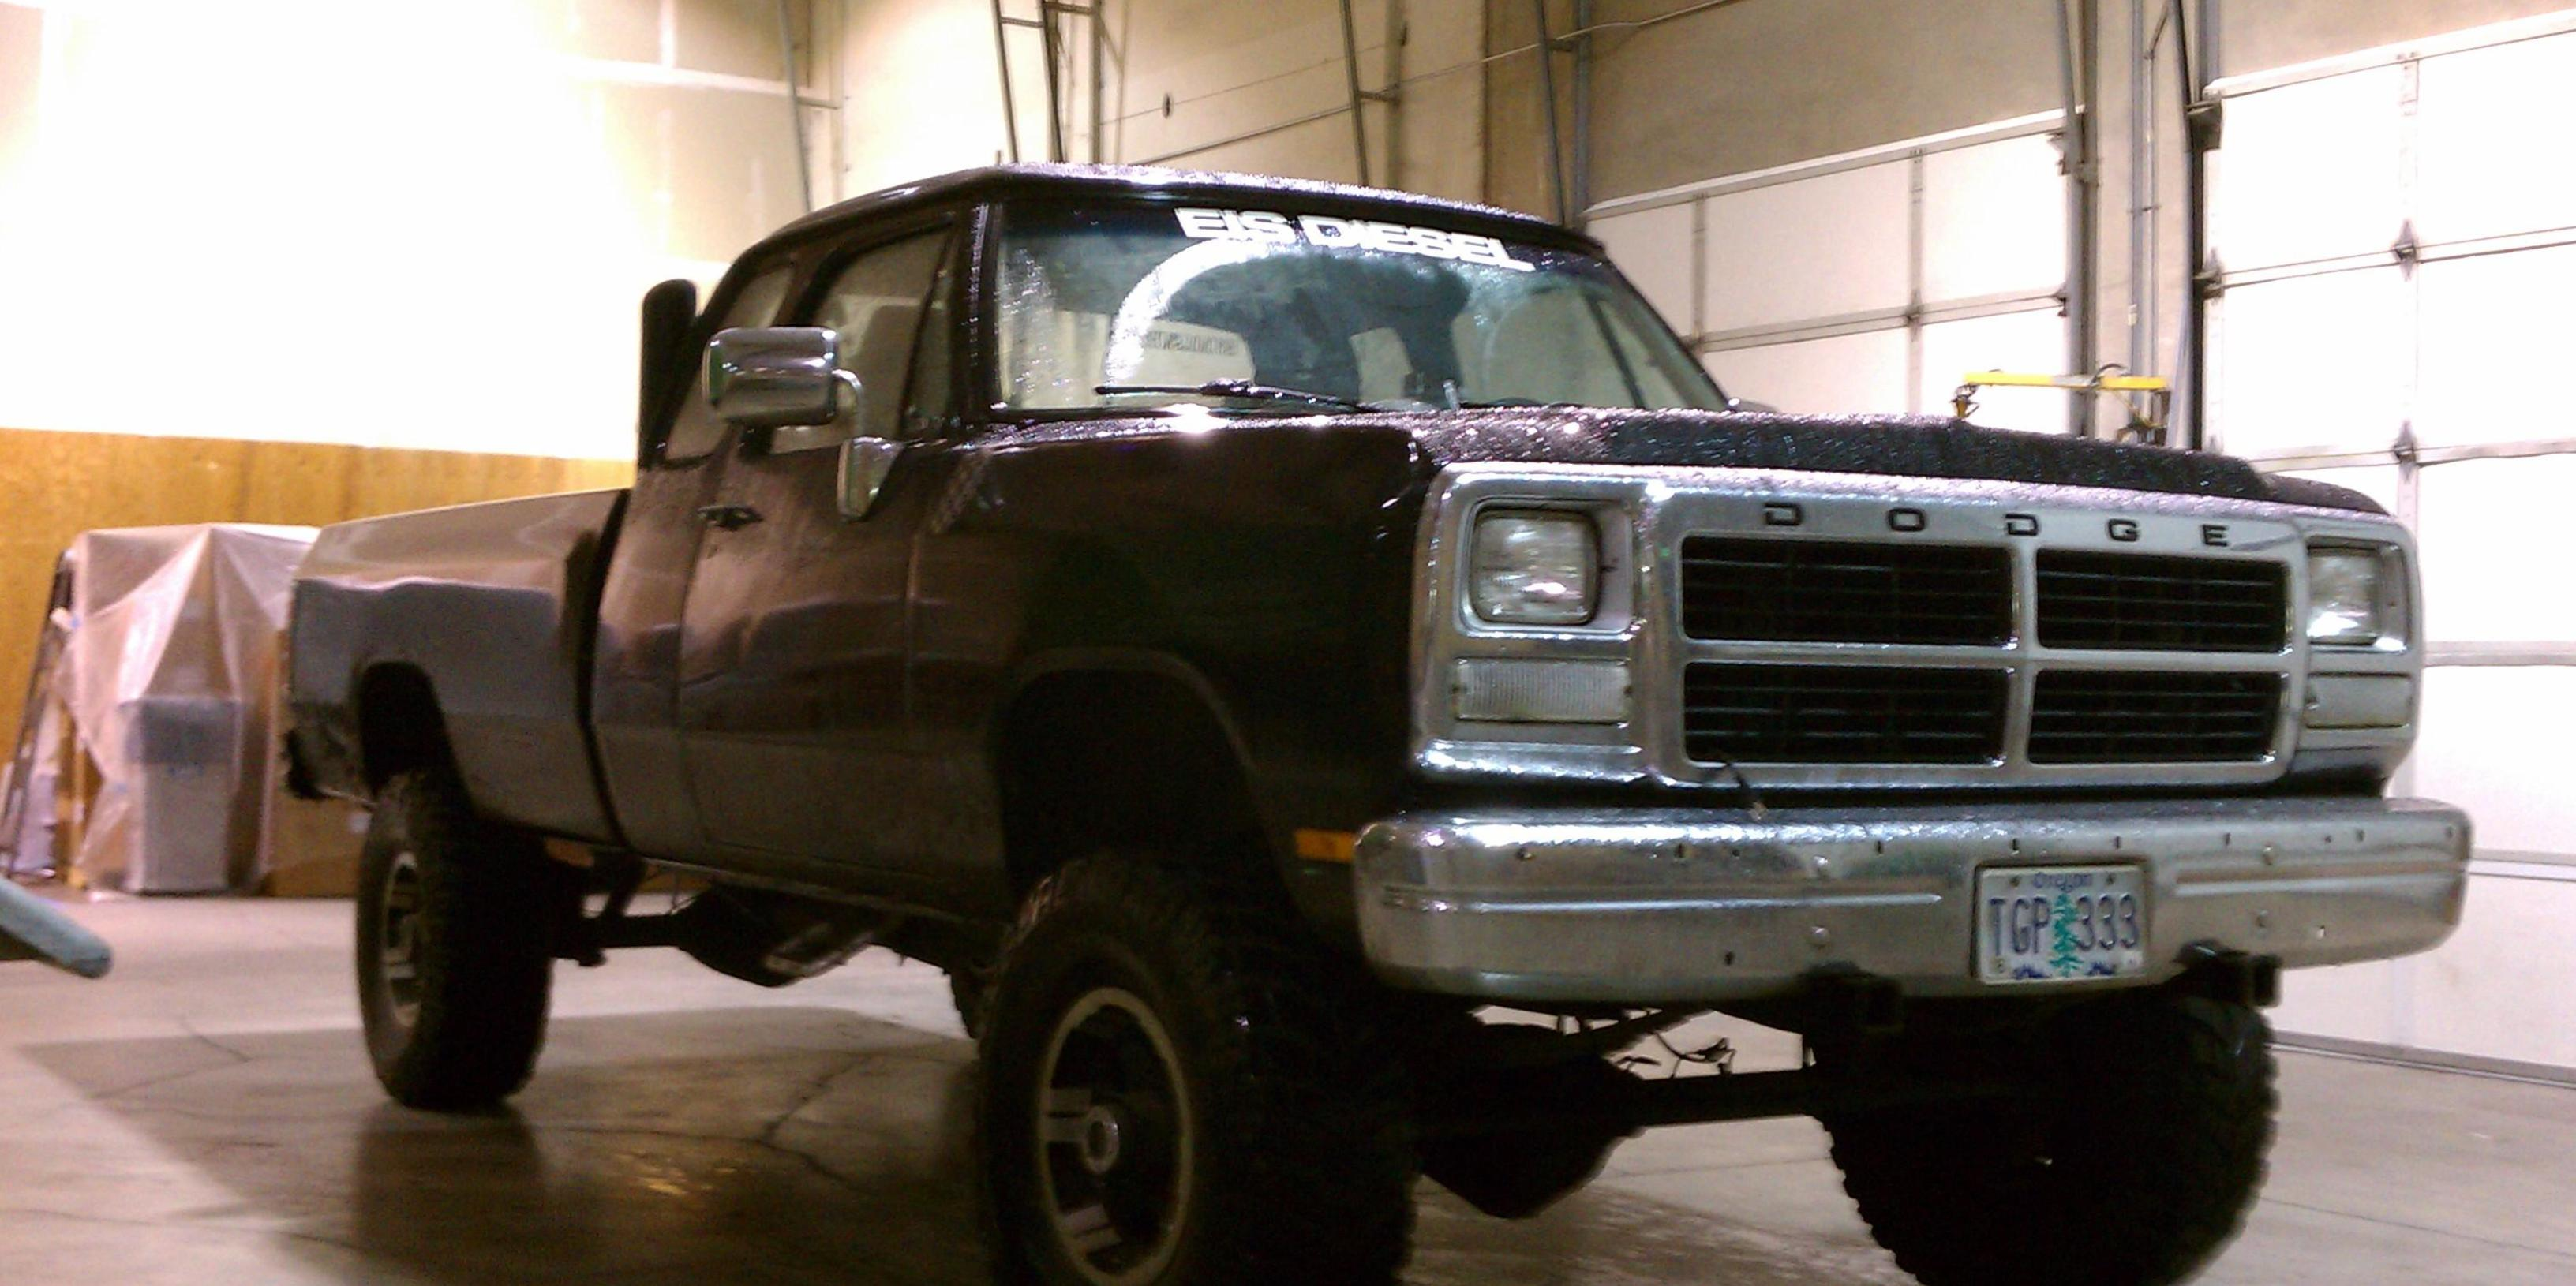 Ford Shelby Truck >> whtlightin 1993 Dodge Ram 2500 Club Cab Specs, Photos ...